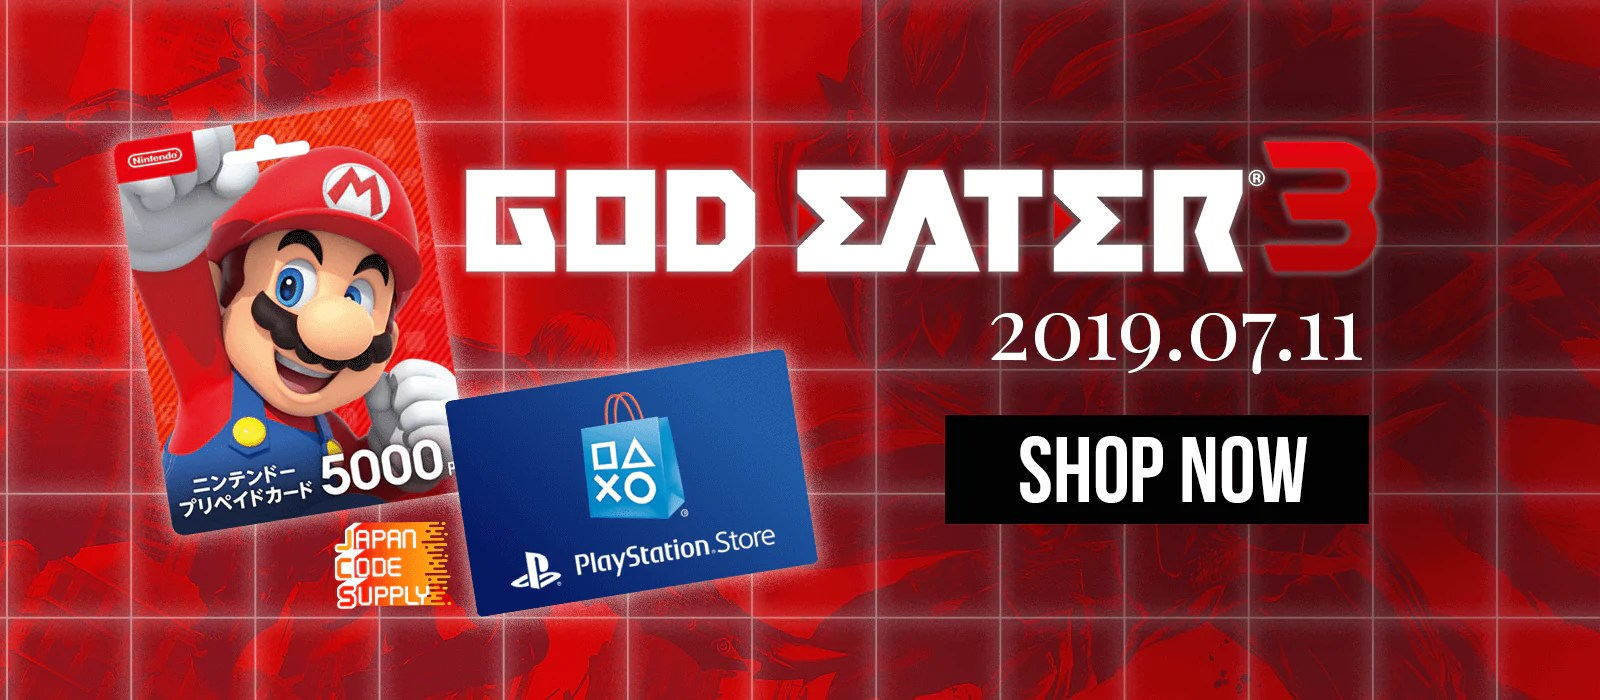 Ps Store Karte Code Delivery In 1 Minute Japancodesupply Cheap Japanese